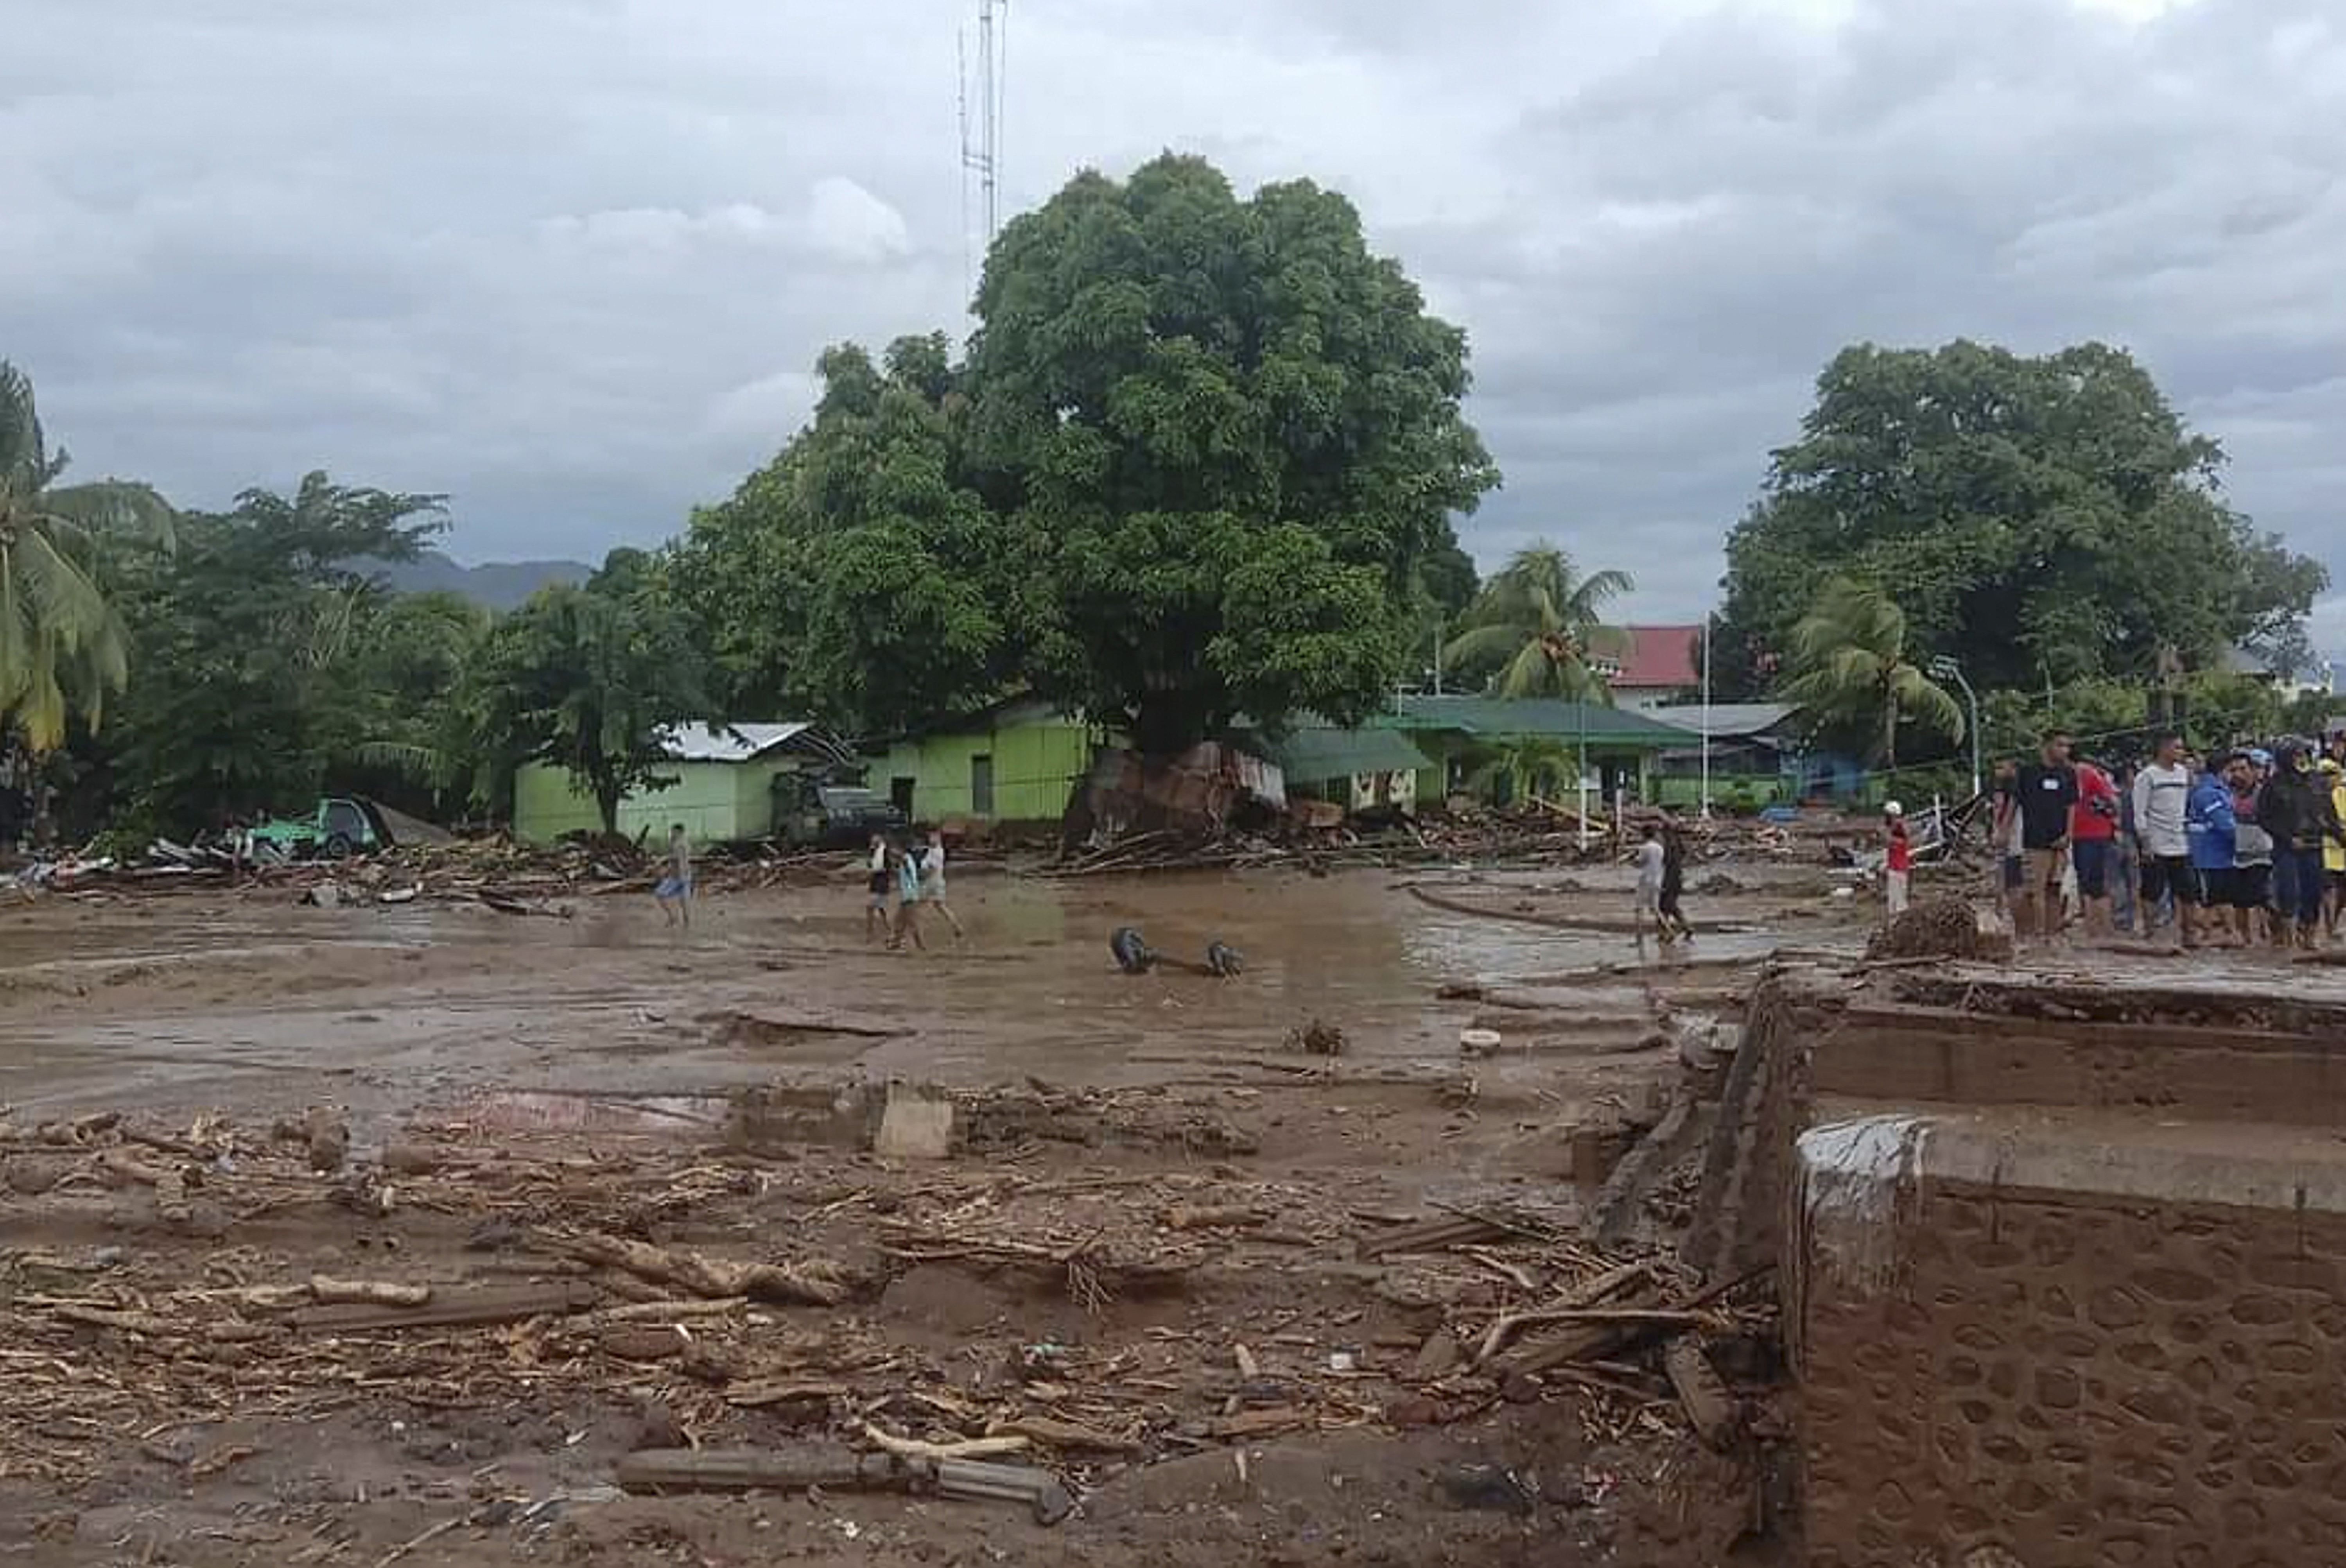 Residents inspect the damage at a village hit by flash flood in East Flores, Indonesia,  on April 4, 2021.